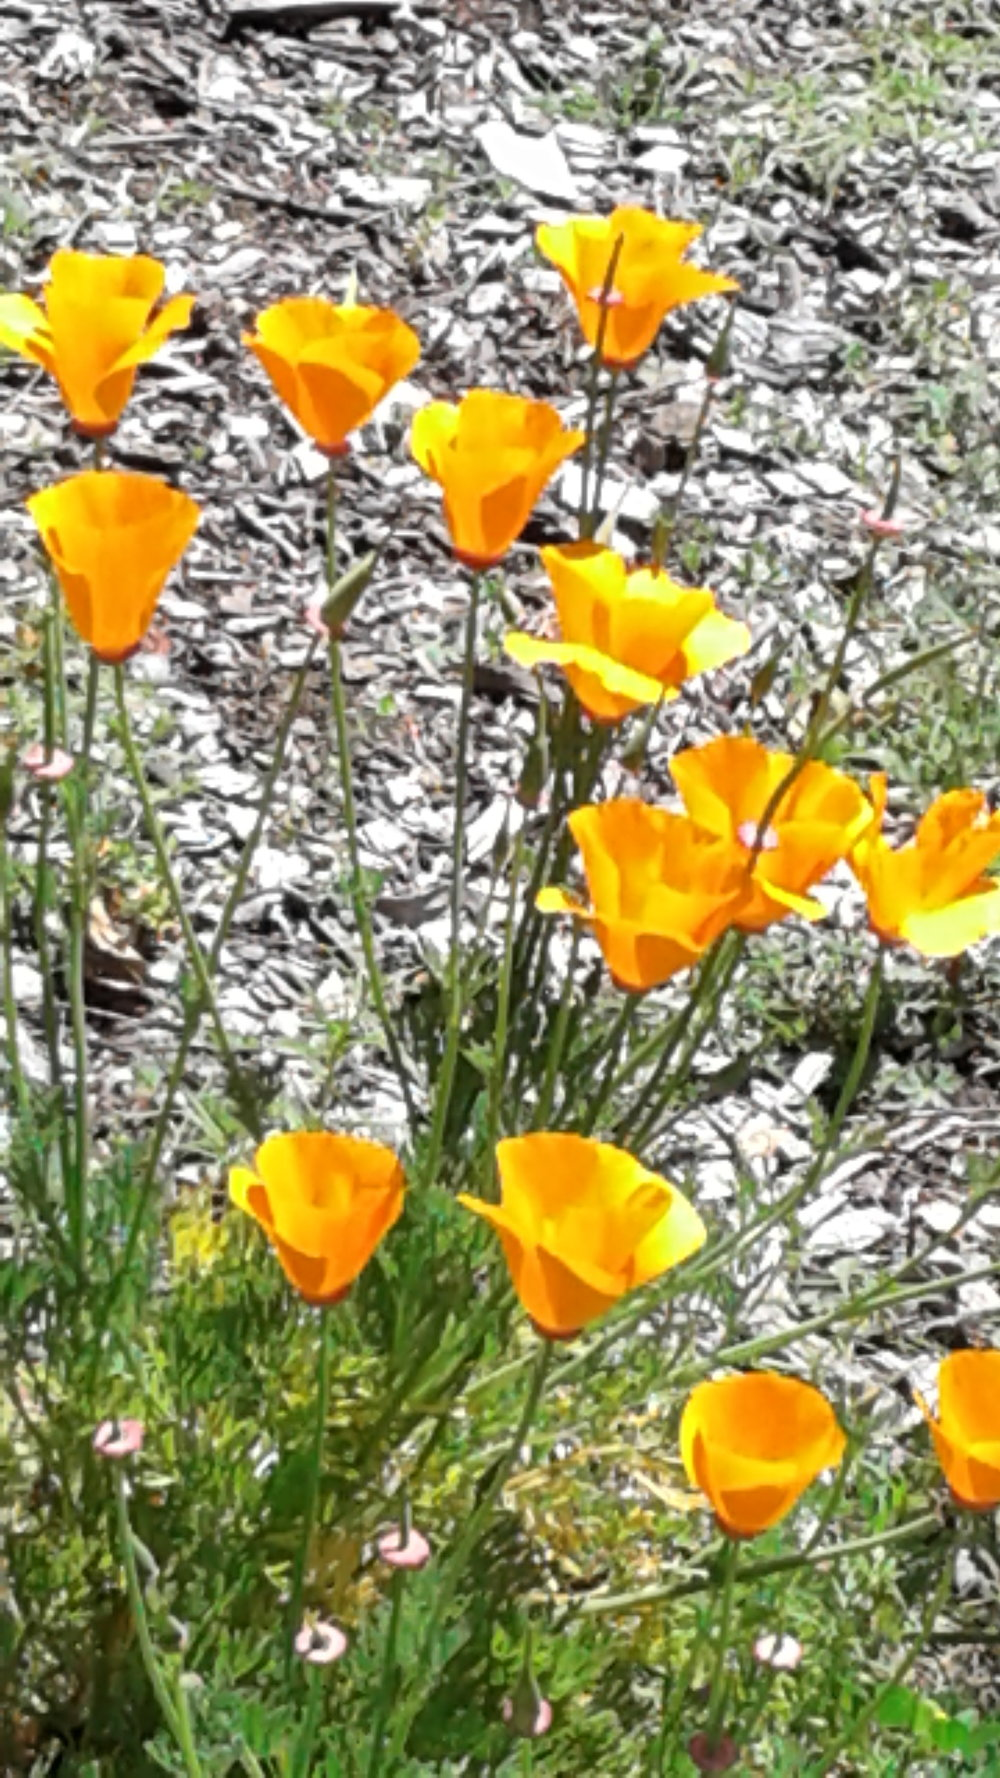 Poppies in the field 2.jpg